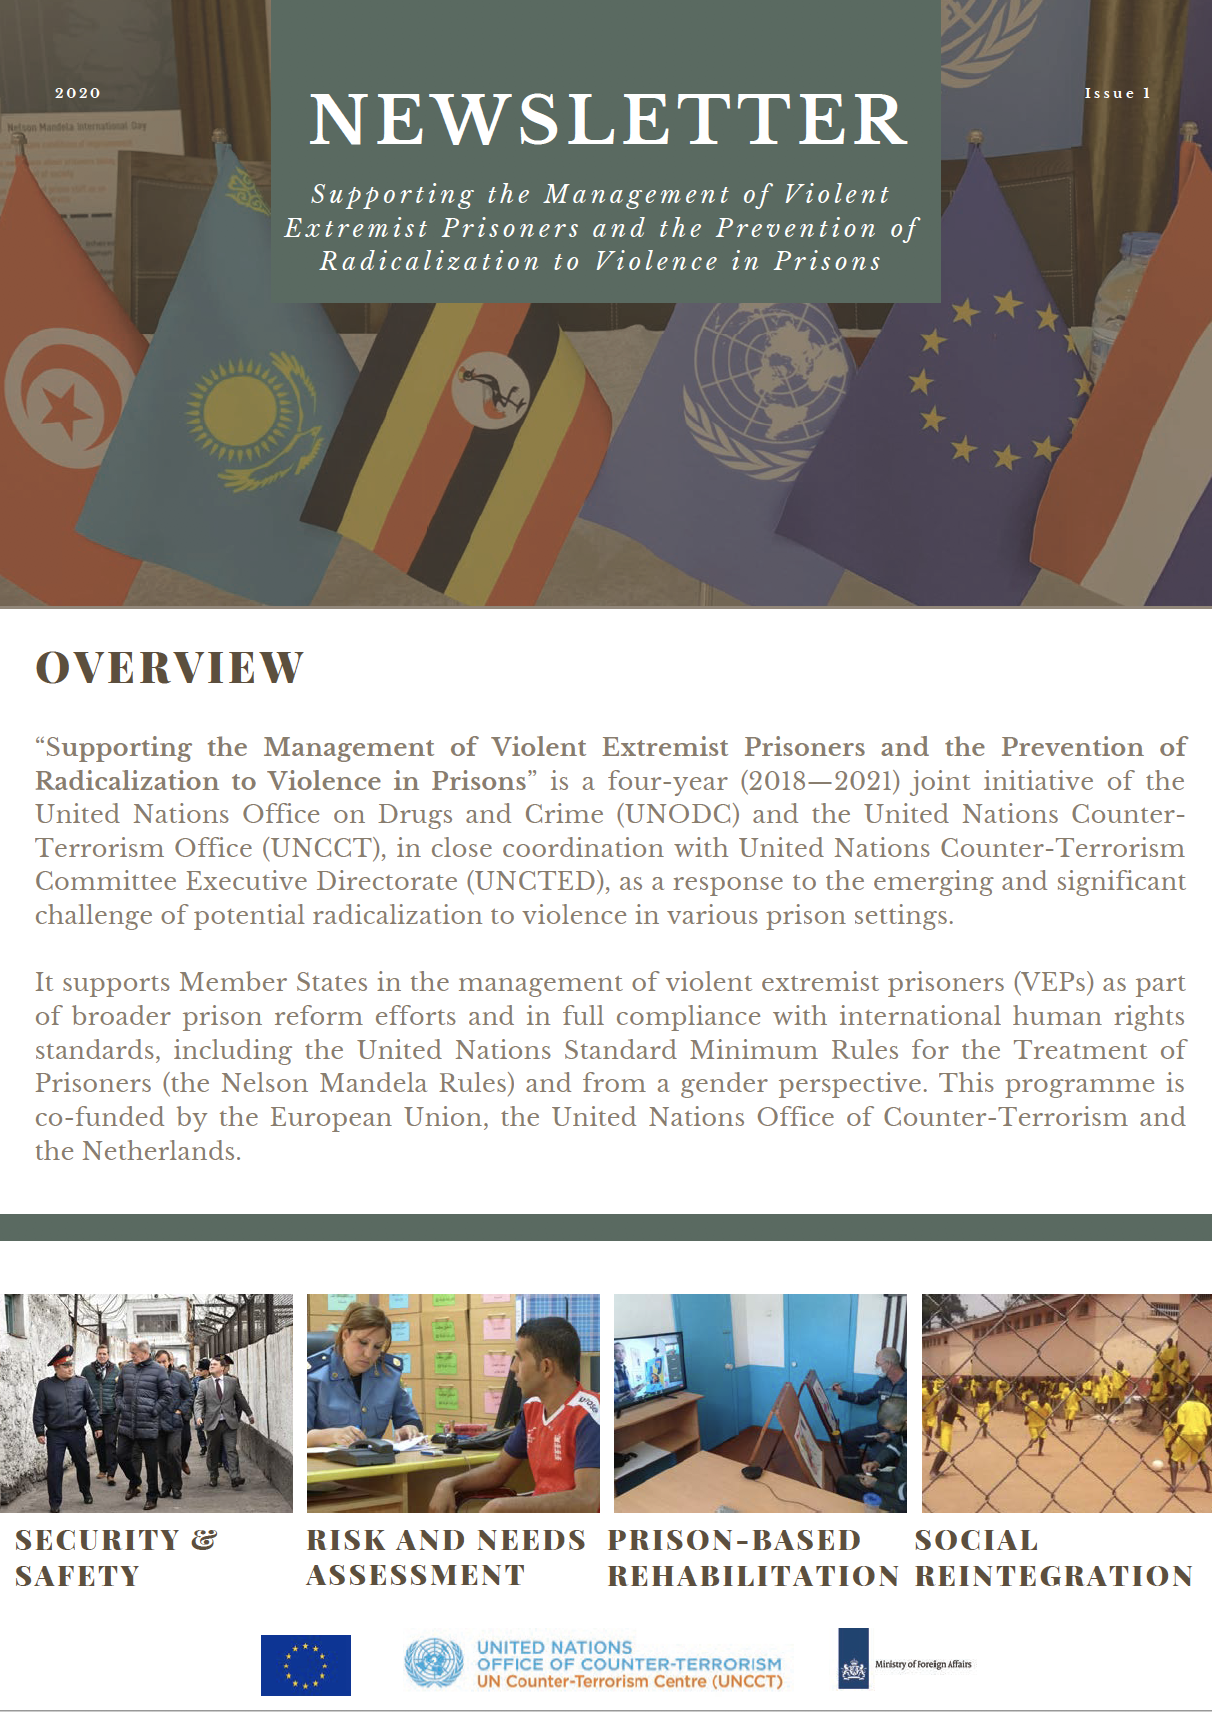 2019 Annual Report on the Fourth Year of the UNCCT 5-Year Programme